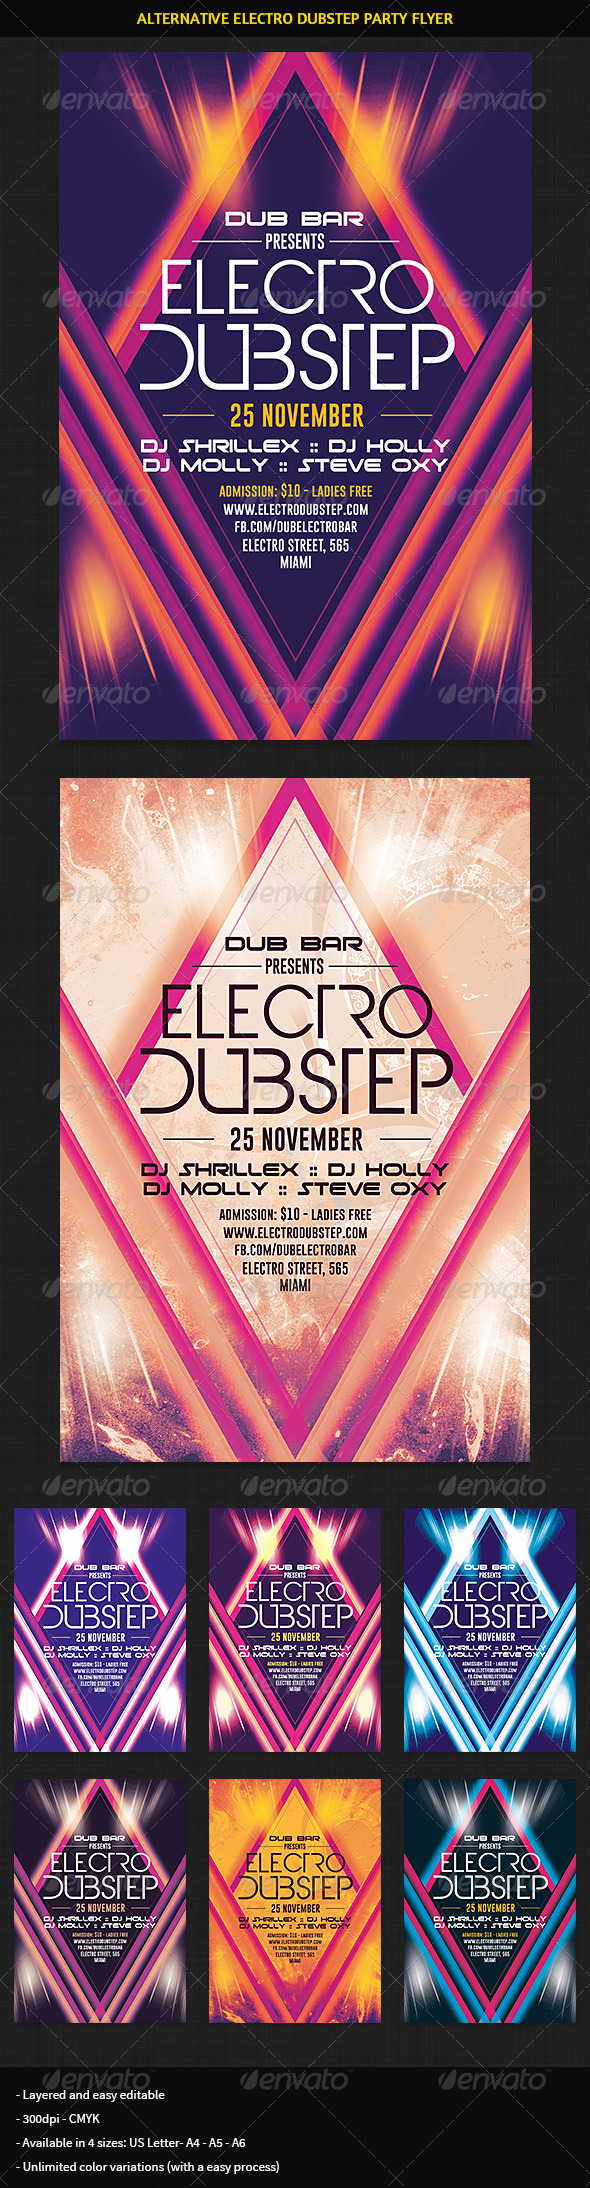 GraphicRiver Alternative Electro Minimal Party Flyer 5919898